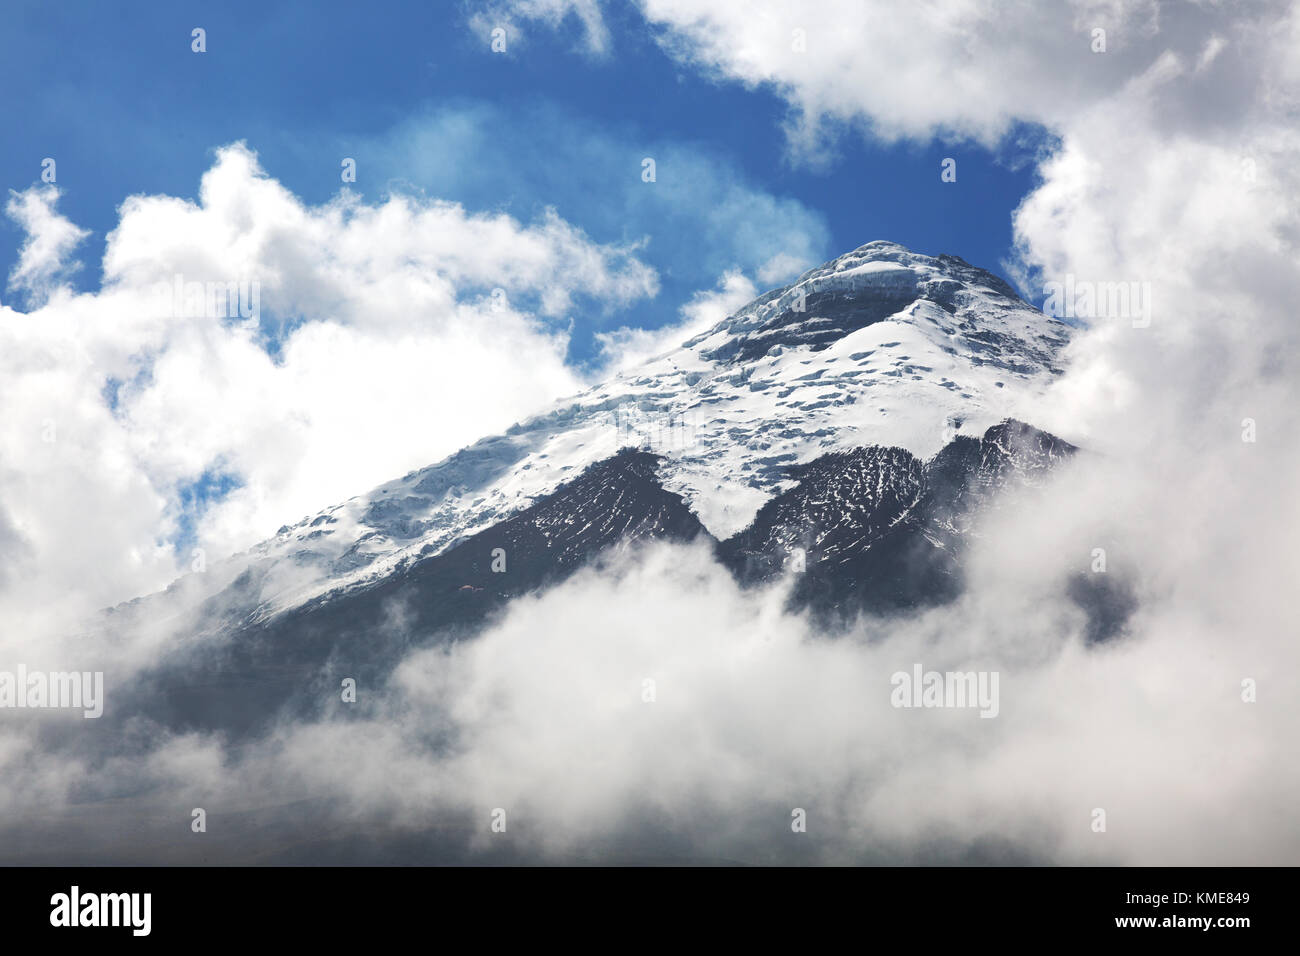 Cotopaxi Volcano - snow covered smoking summit of the second highest mountain in Ecuador, Cotopaxi National Park, - Stock Image